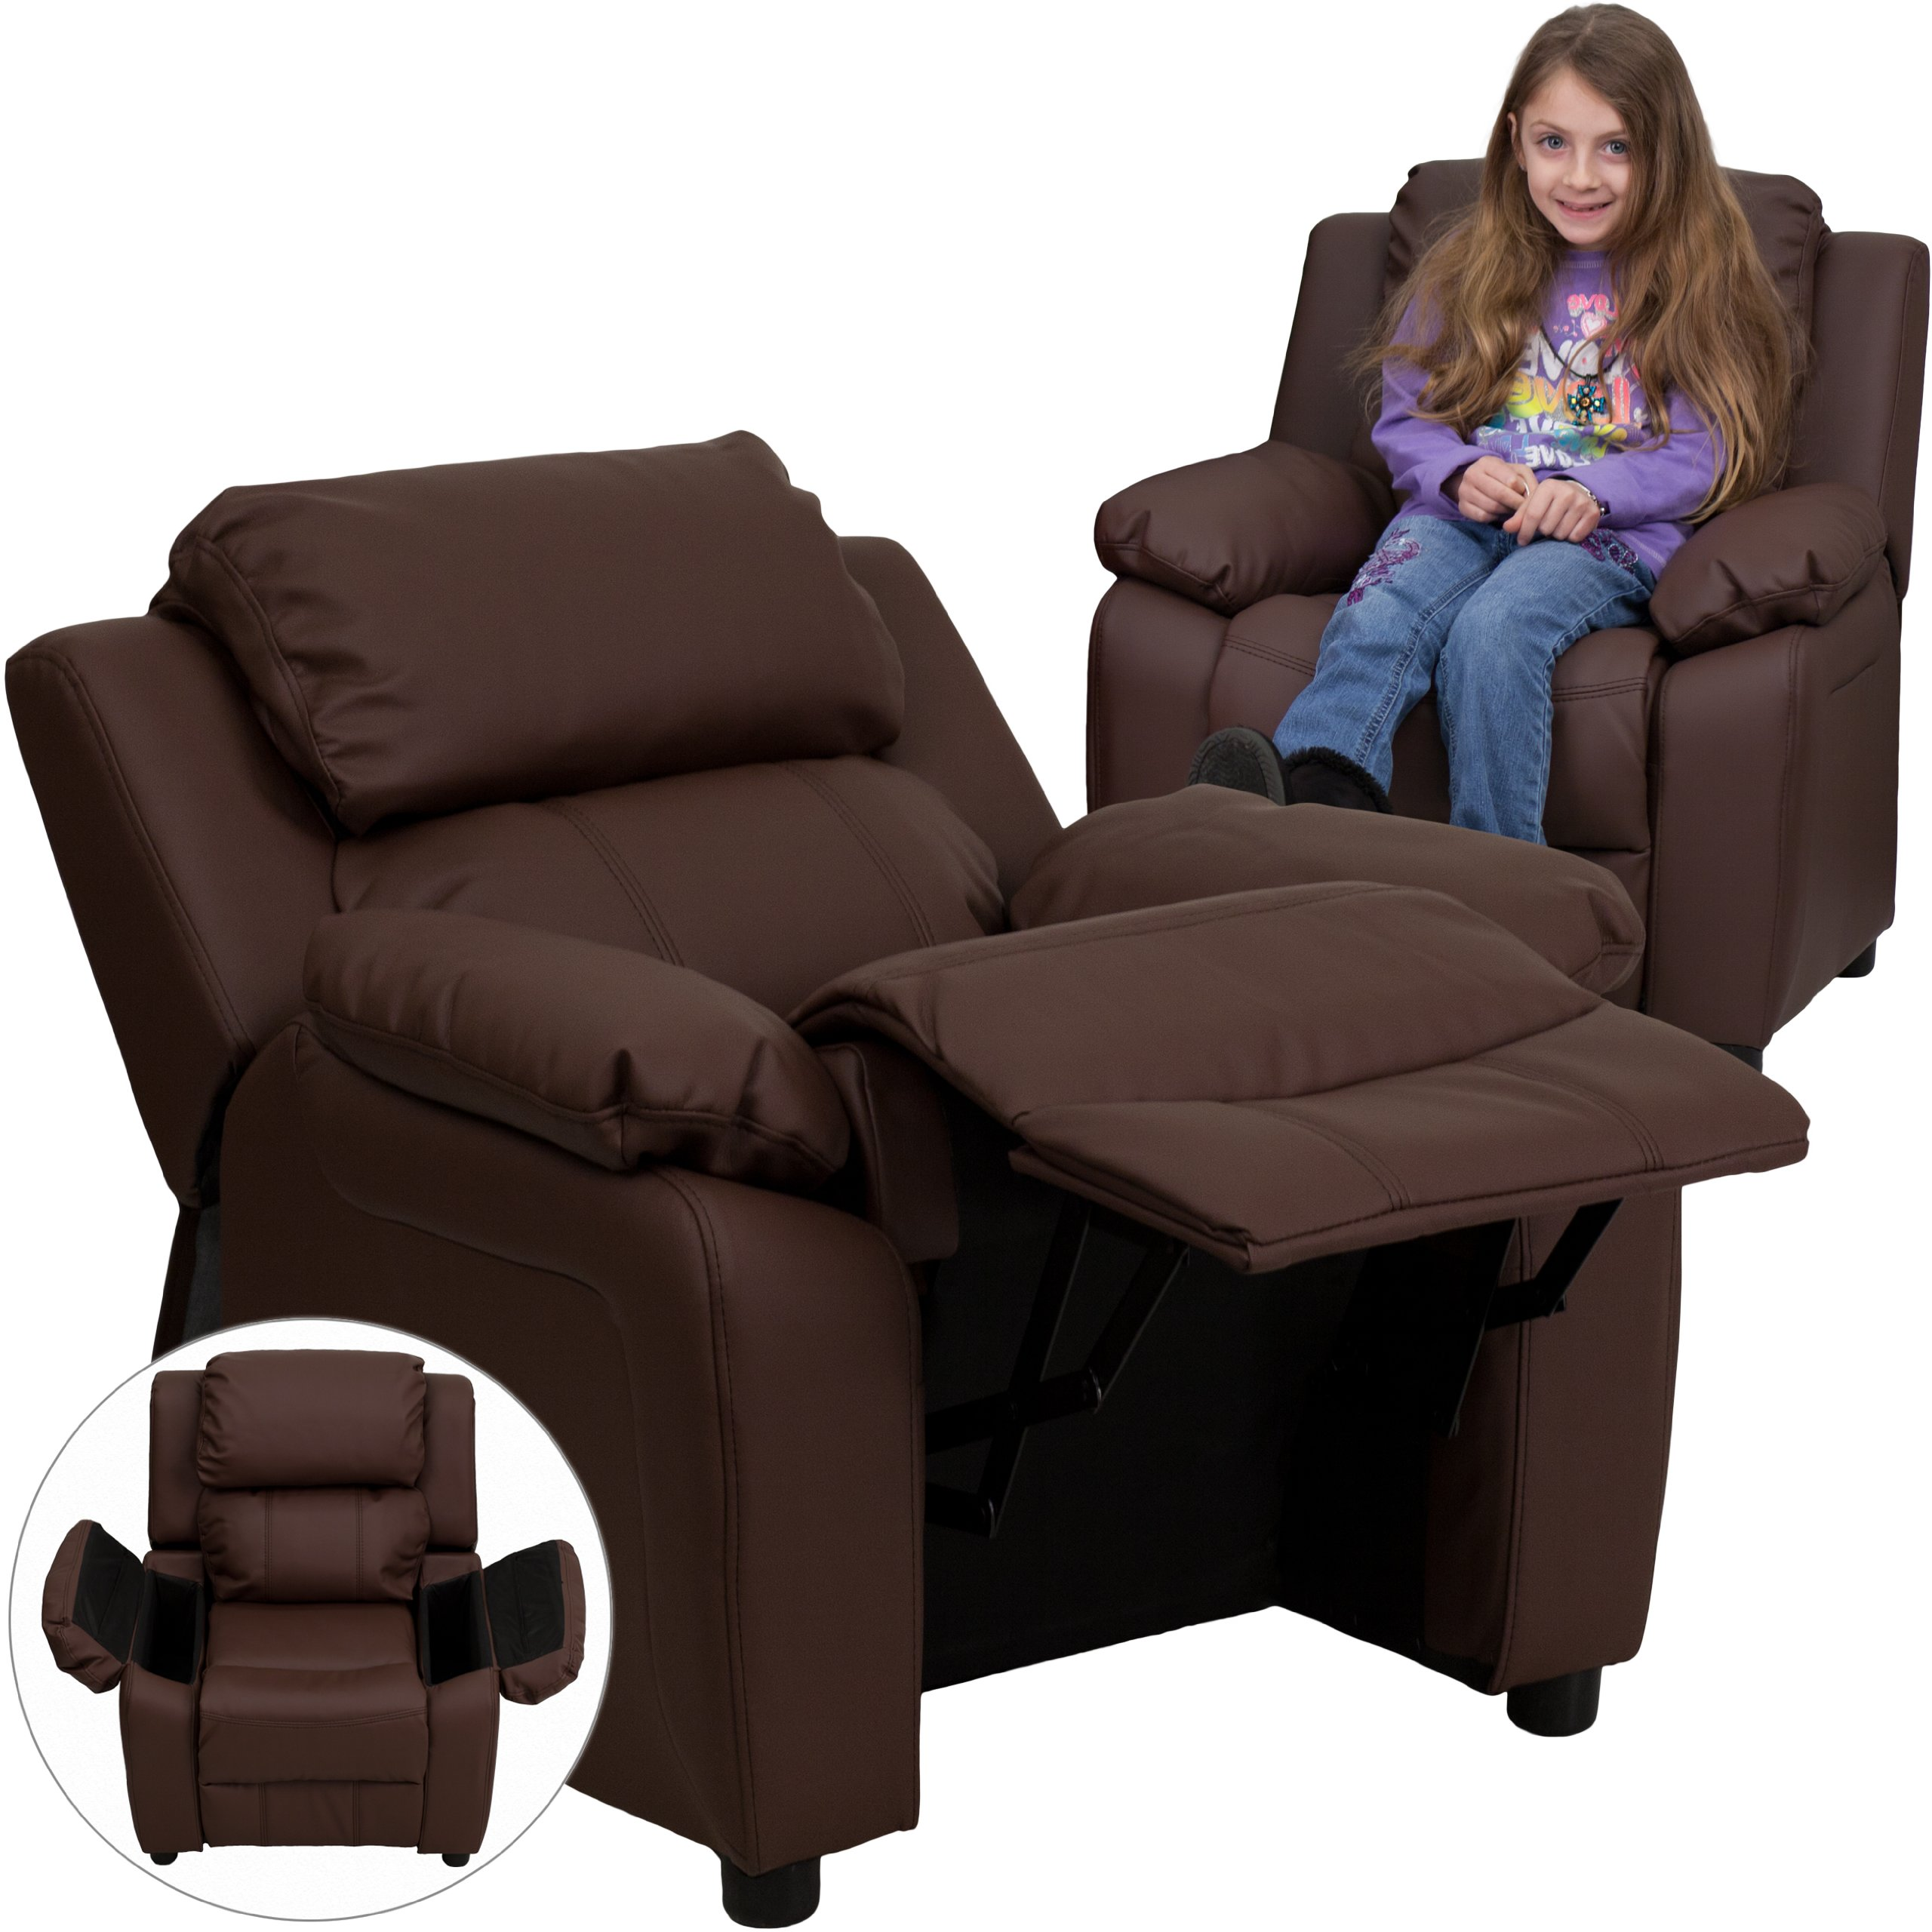 Winston Direct Kids' Series Deluxe Padded Contemporary Brown Leather Recliner with Storage Arms